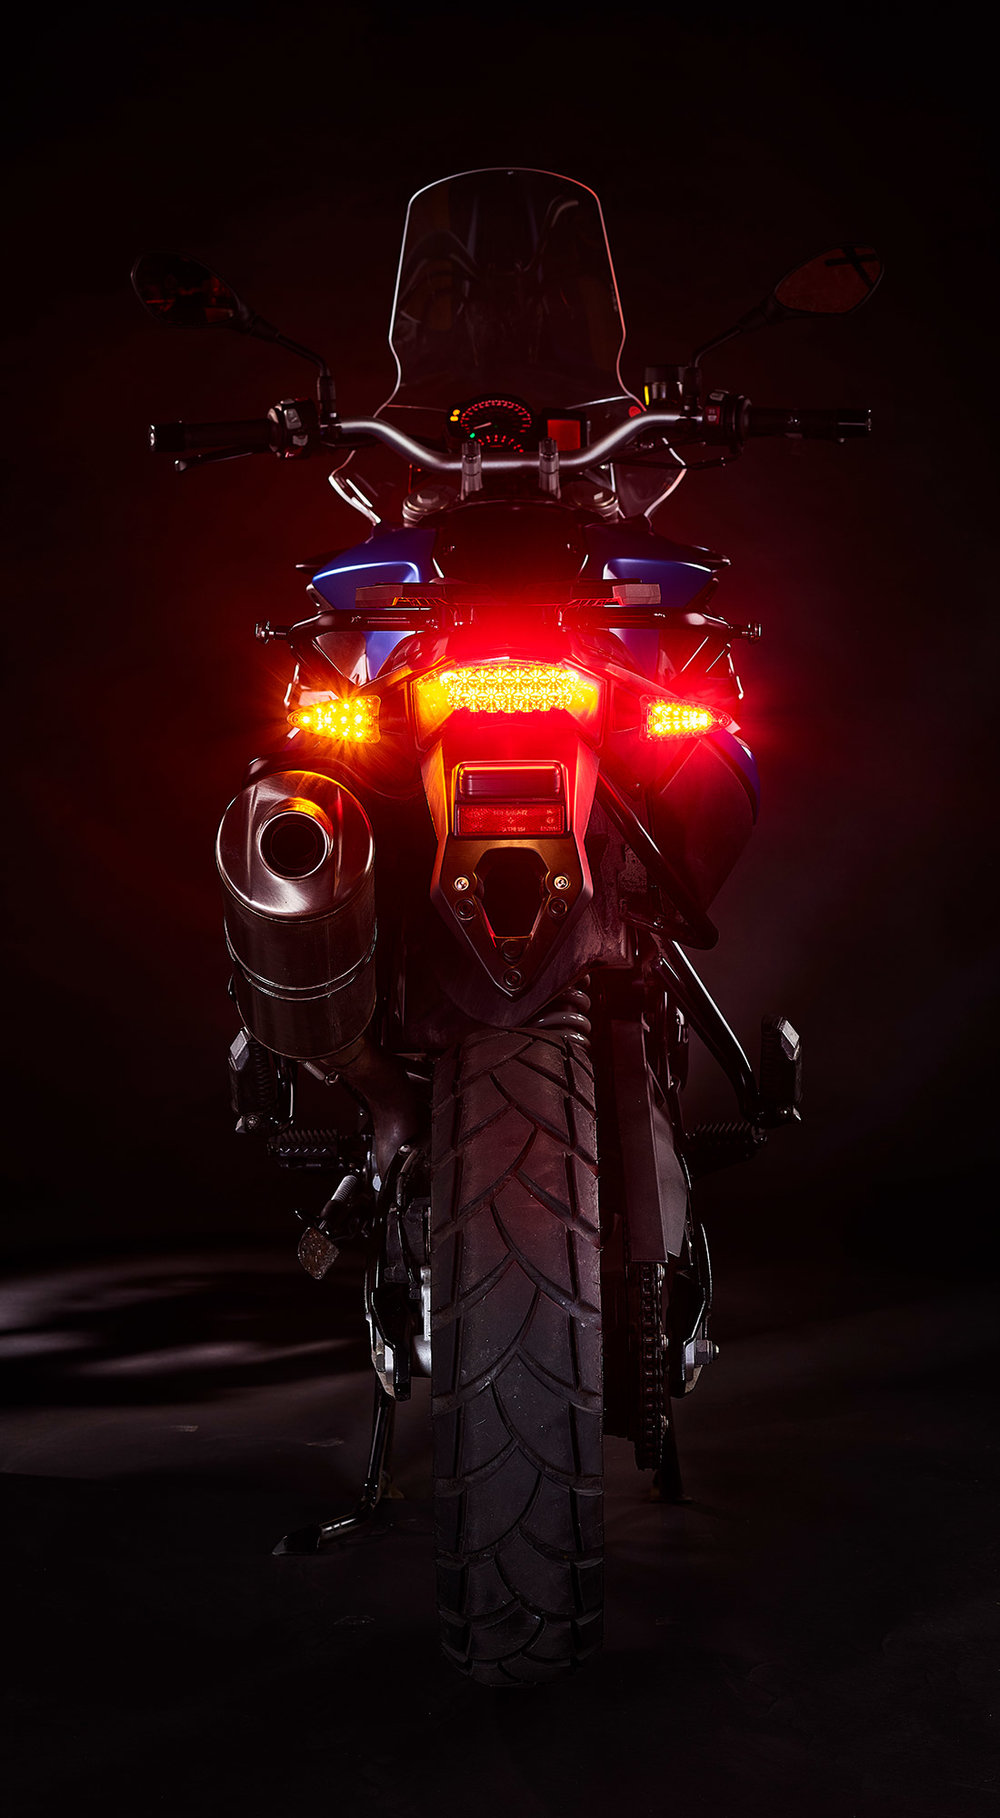 Ultrabrights 2-in-1 LED brake light/turn signal upgrades - For newer BMW motorcycles